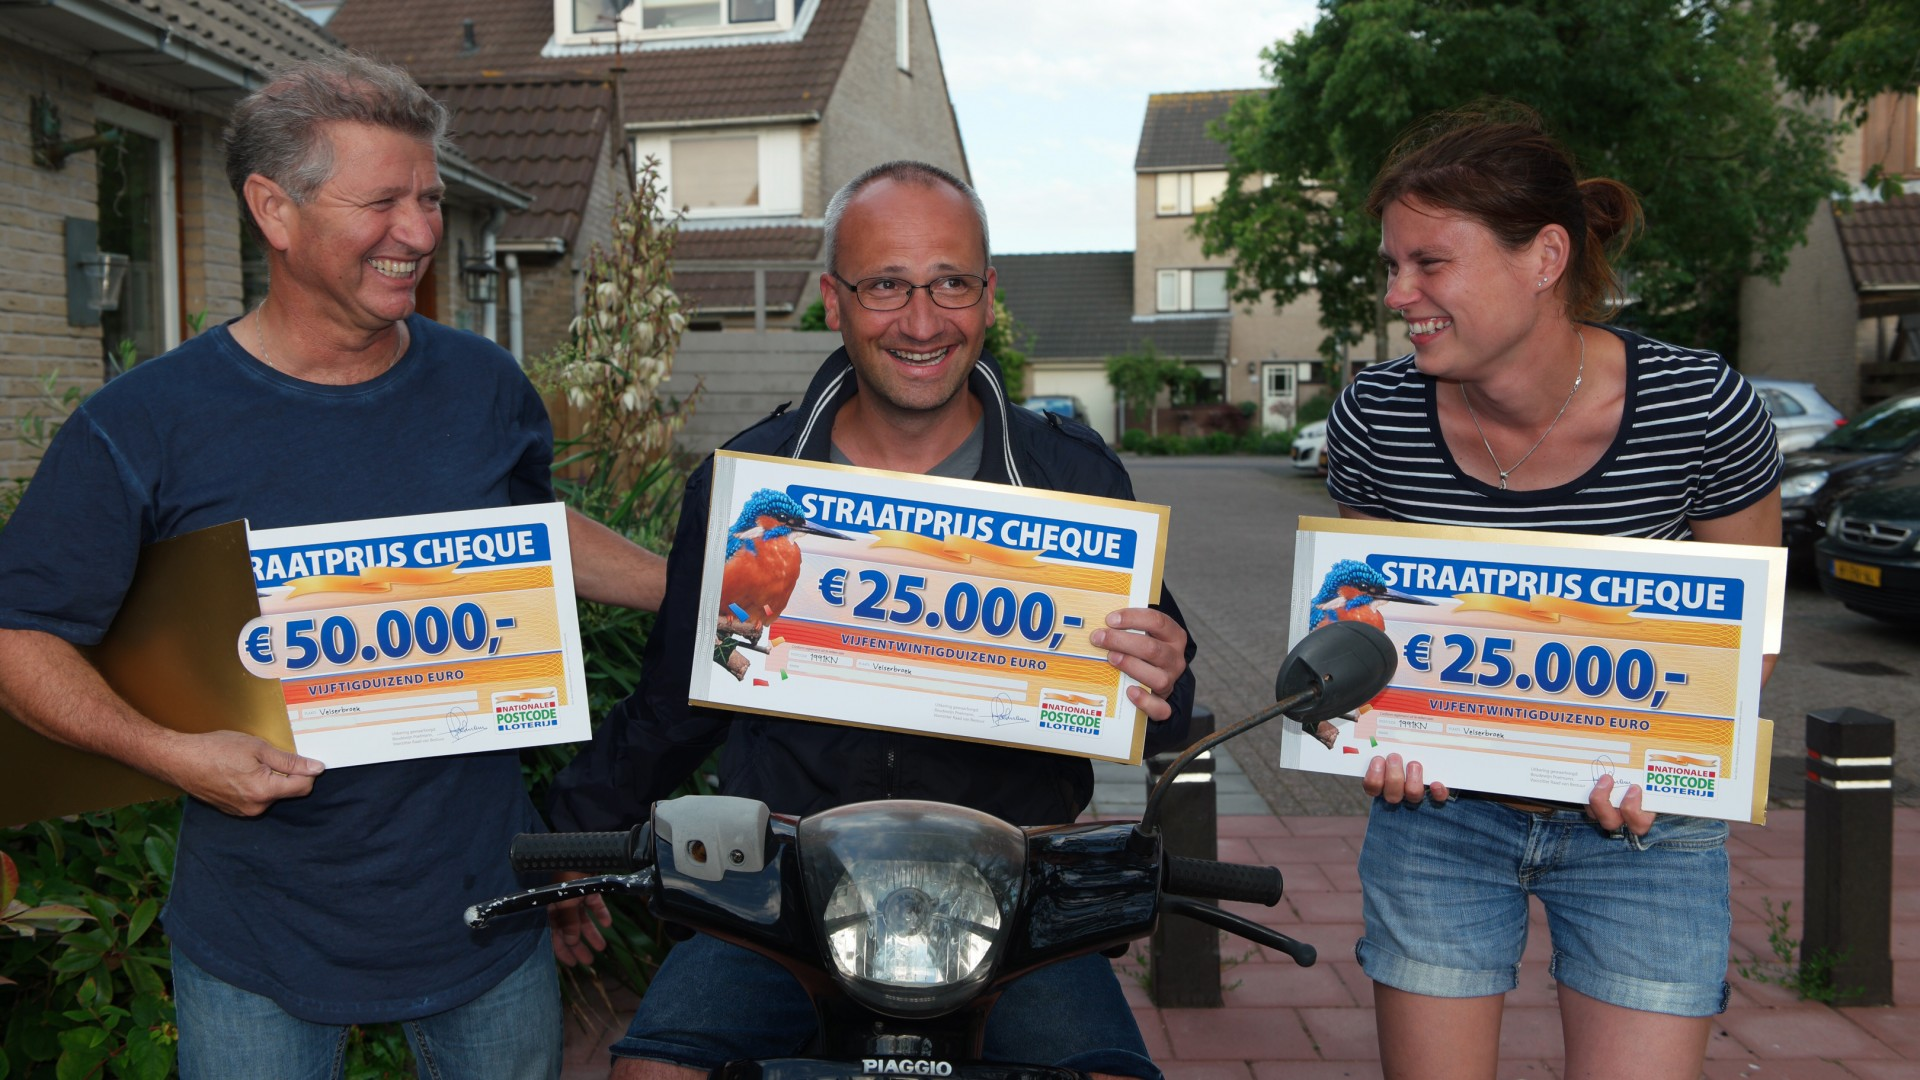 Ron, Mike en Wendy uit Velserbroek